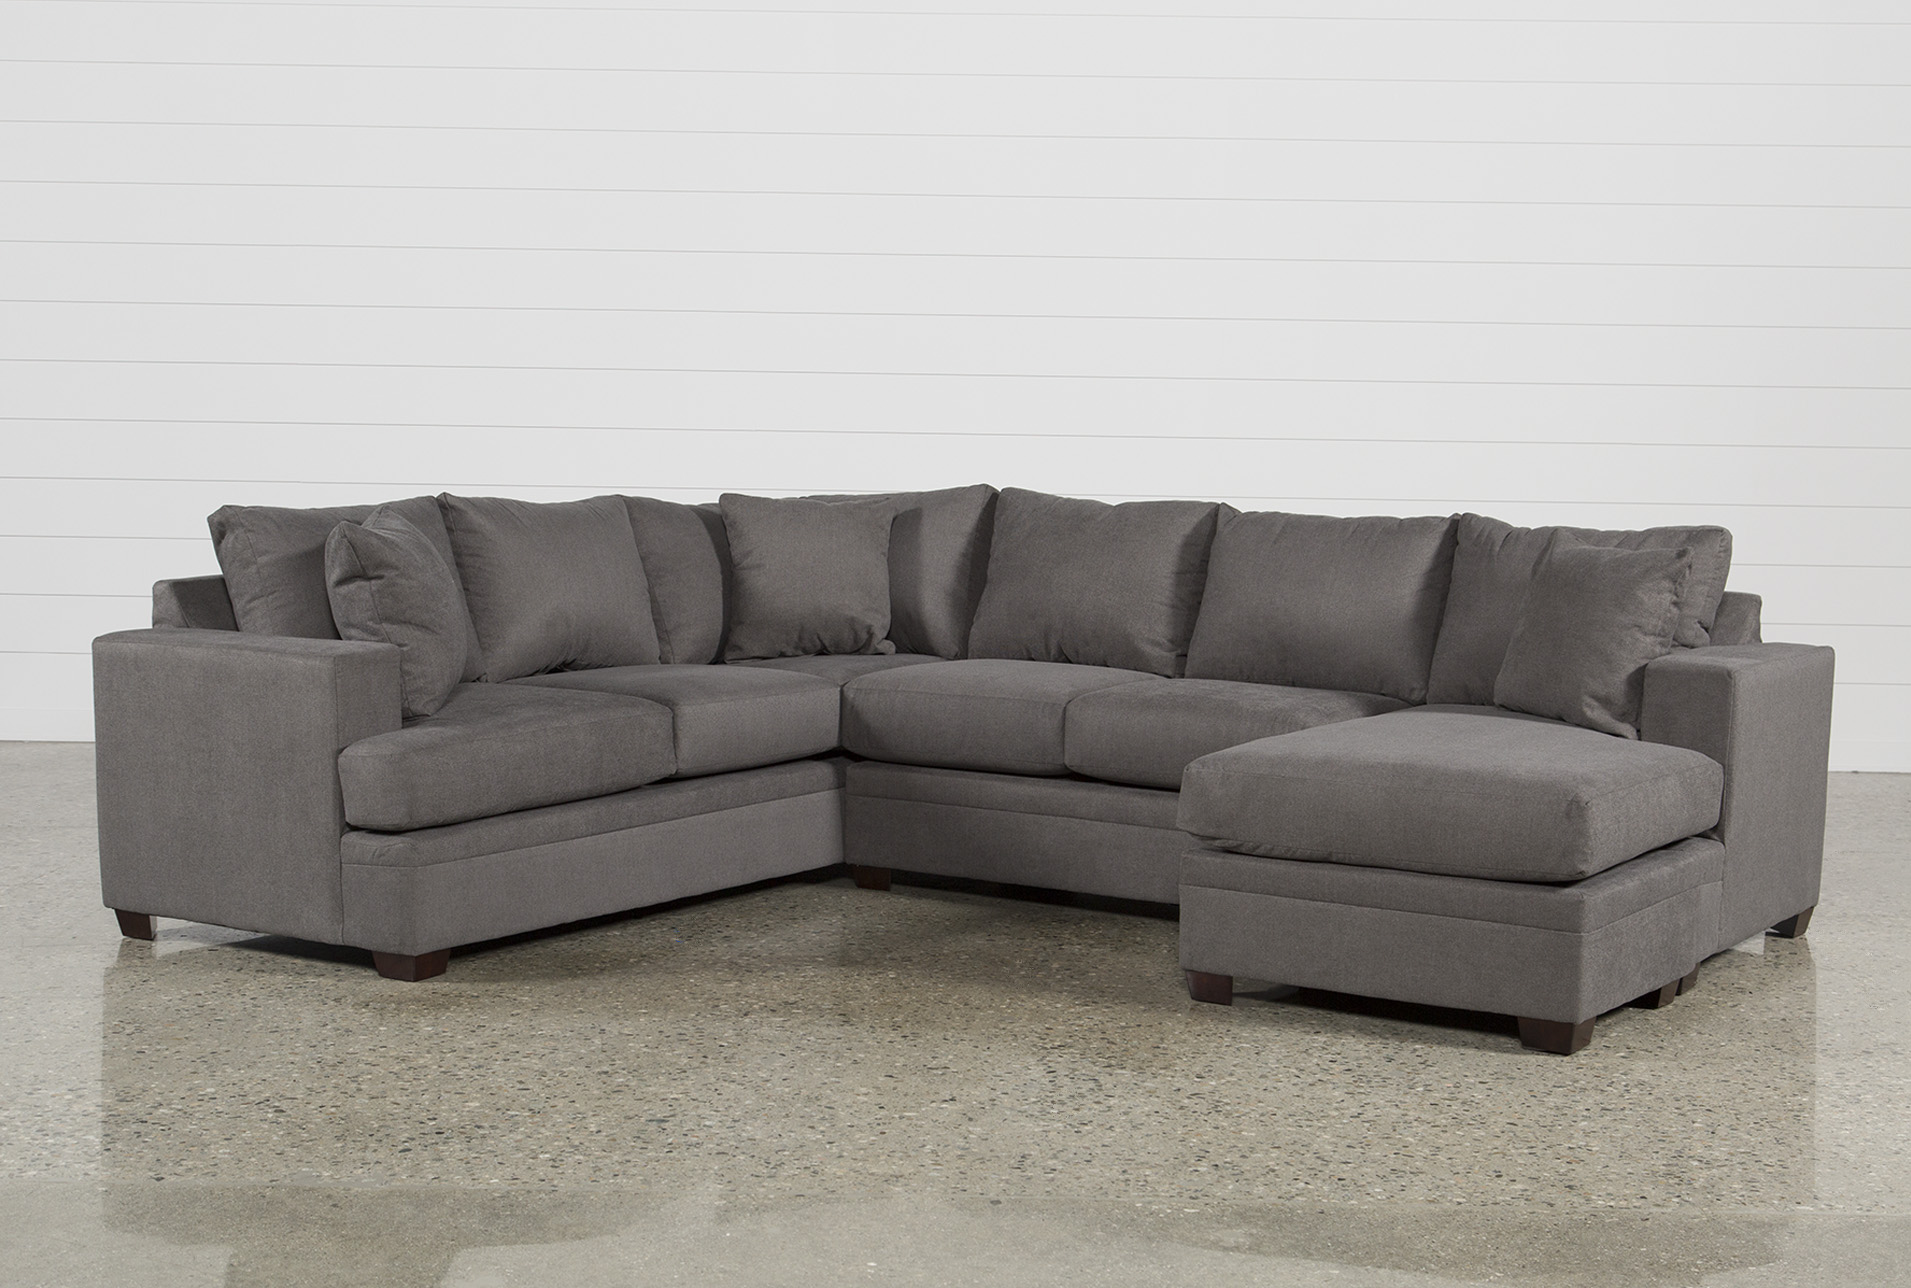 Delightful Kerri 2 Piece Sectional W/Raf Chaise (Qty: 1) Has Been Successfully Added  To Your Cart.